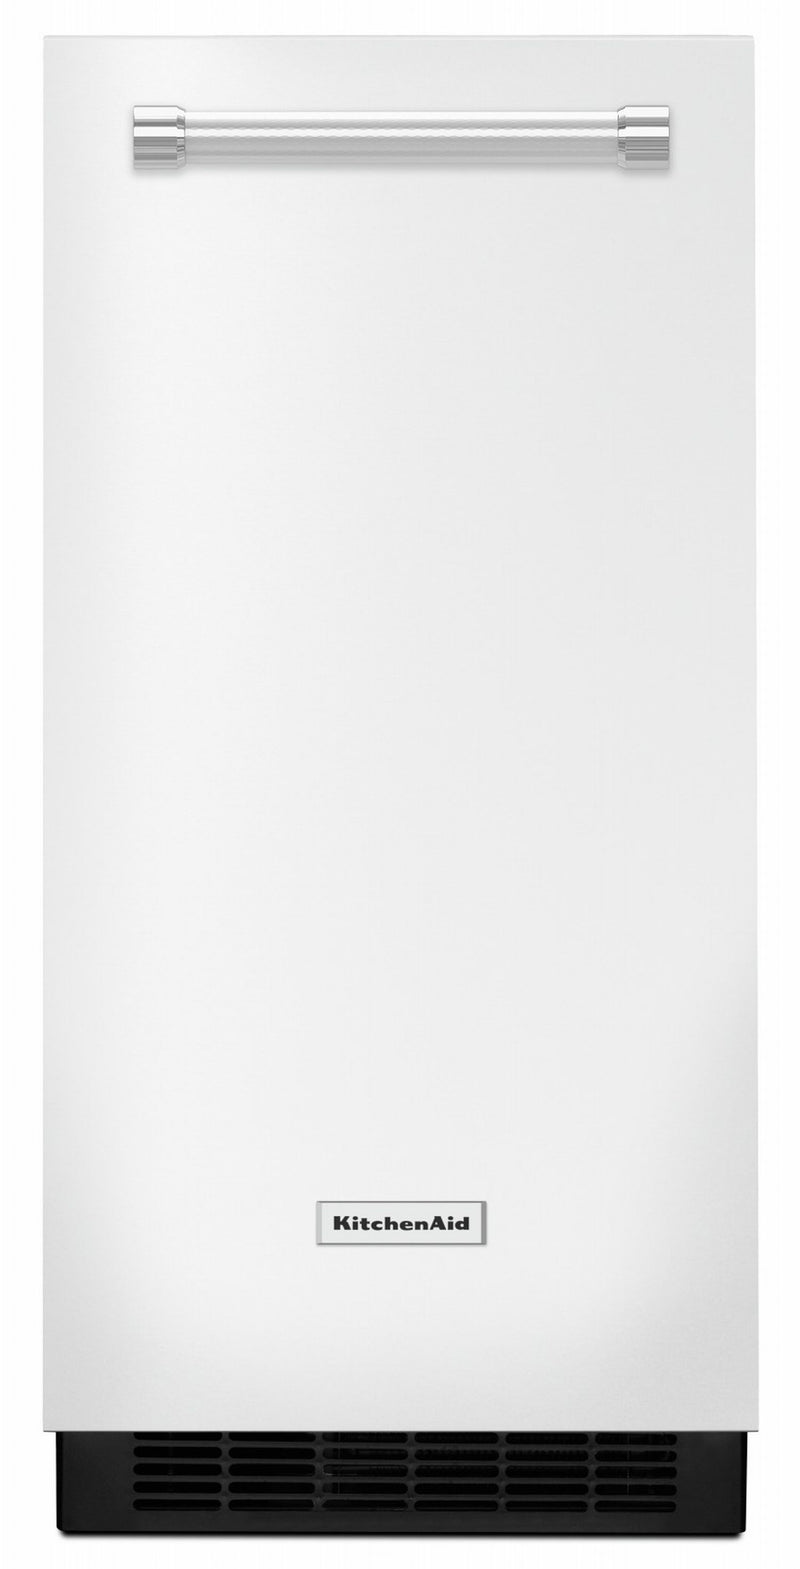 KitchenAid White Automatic Ice Maker (15 inch.) - KUIX335HWH